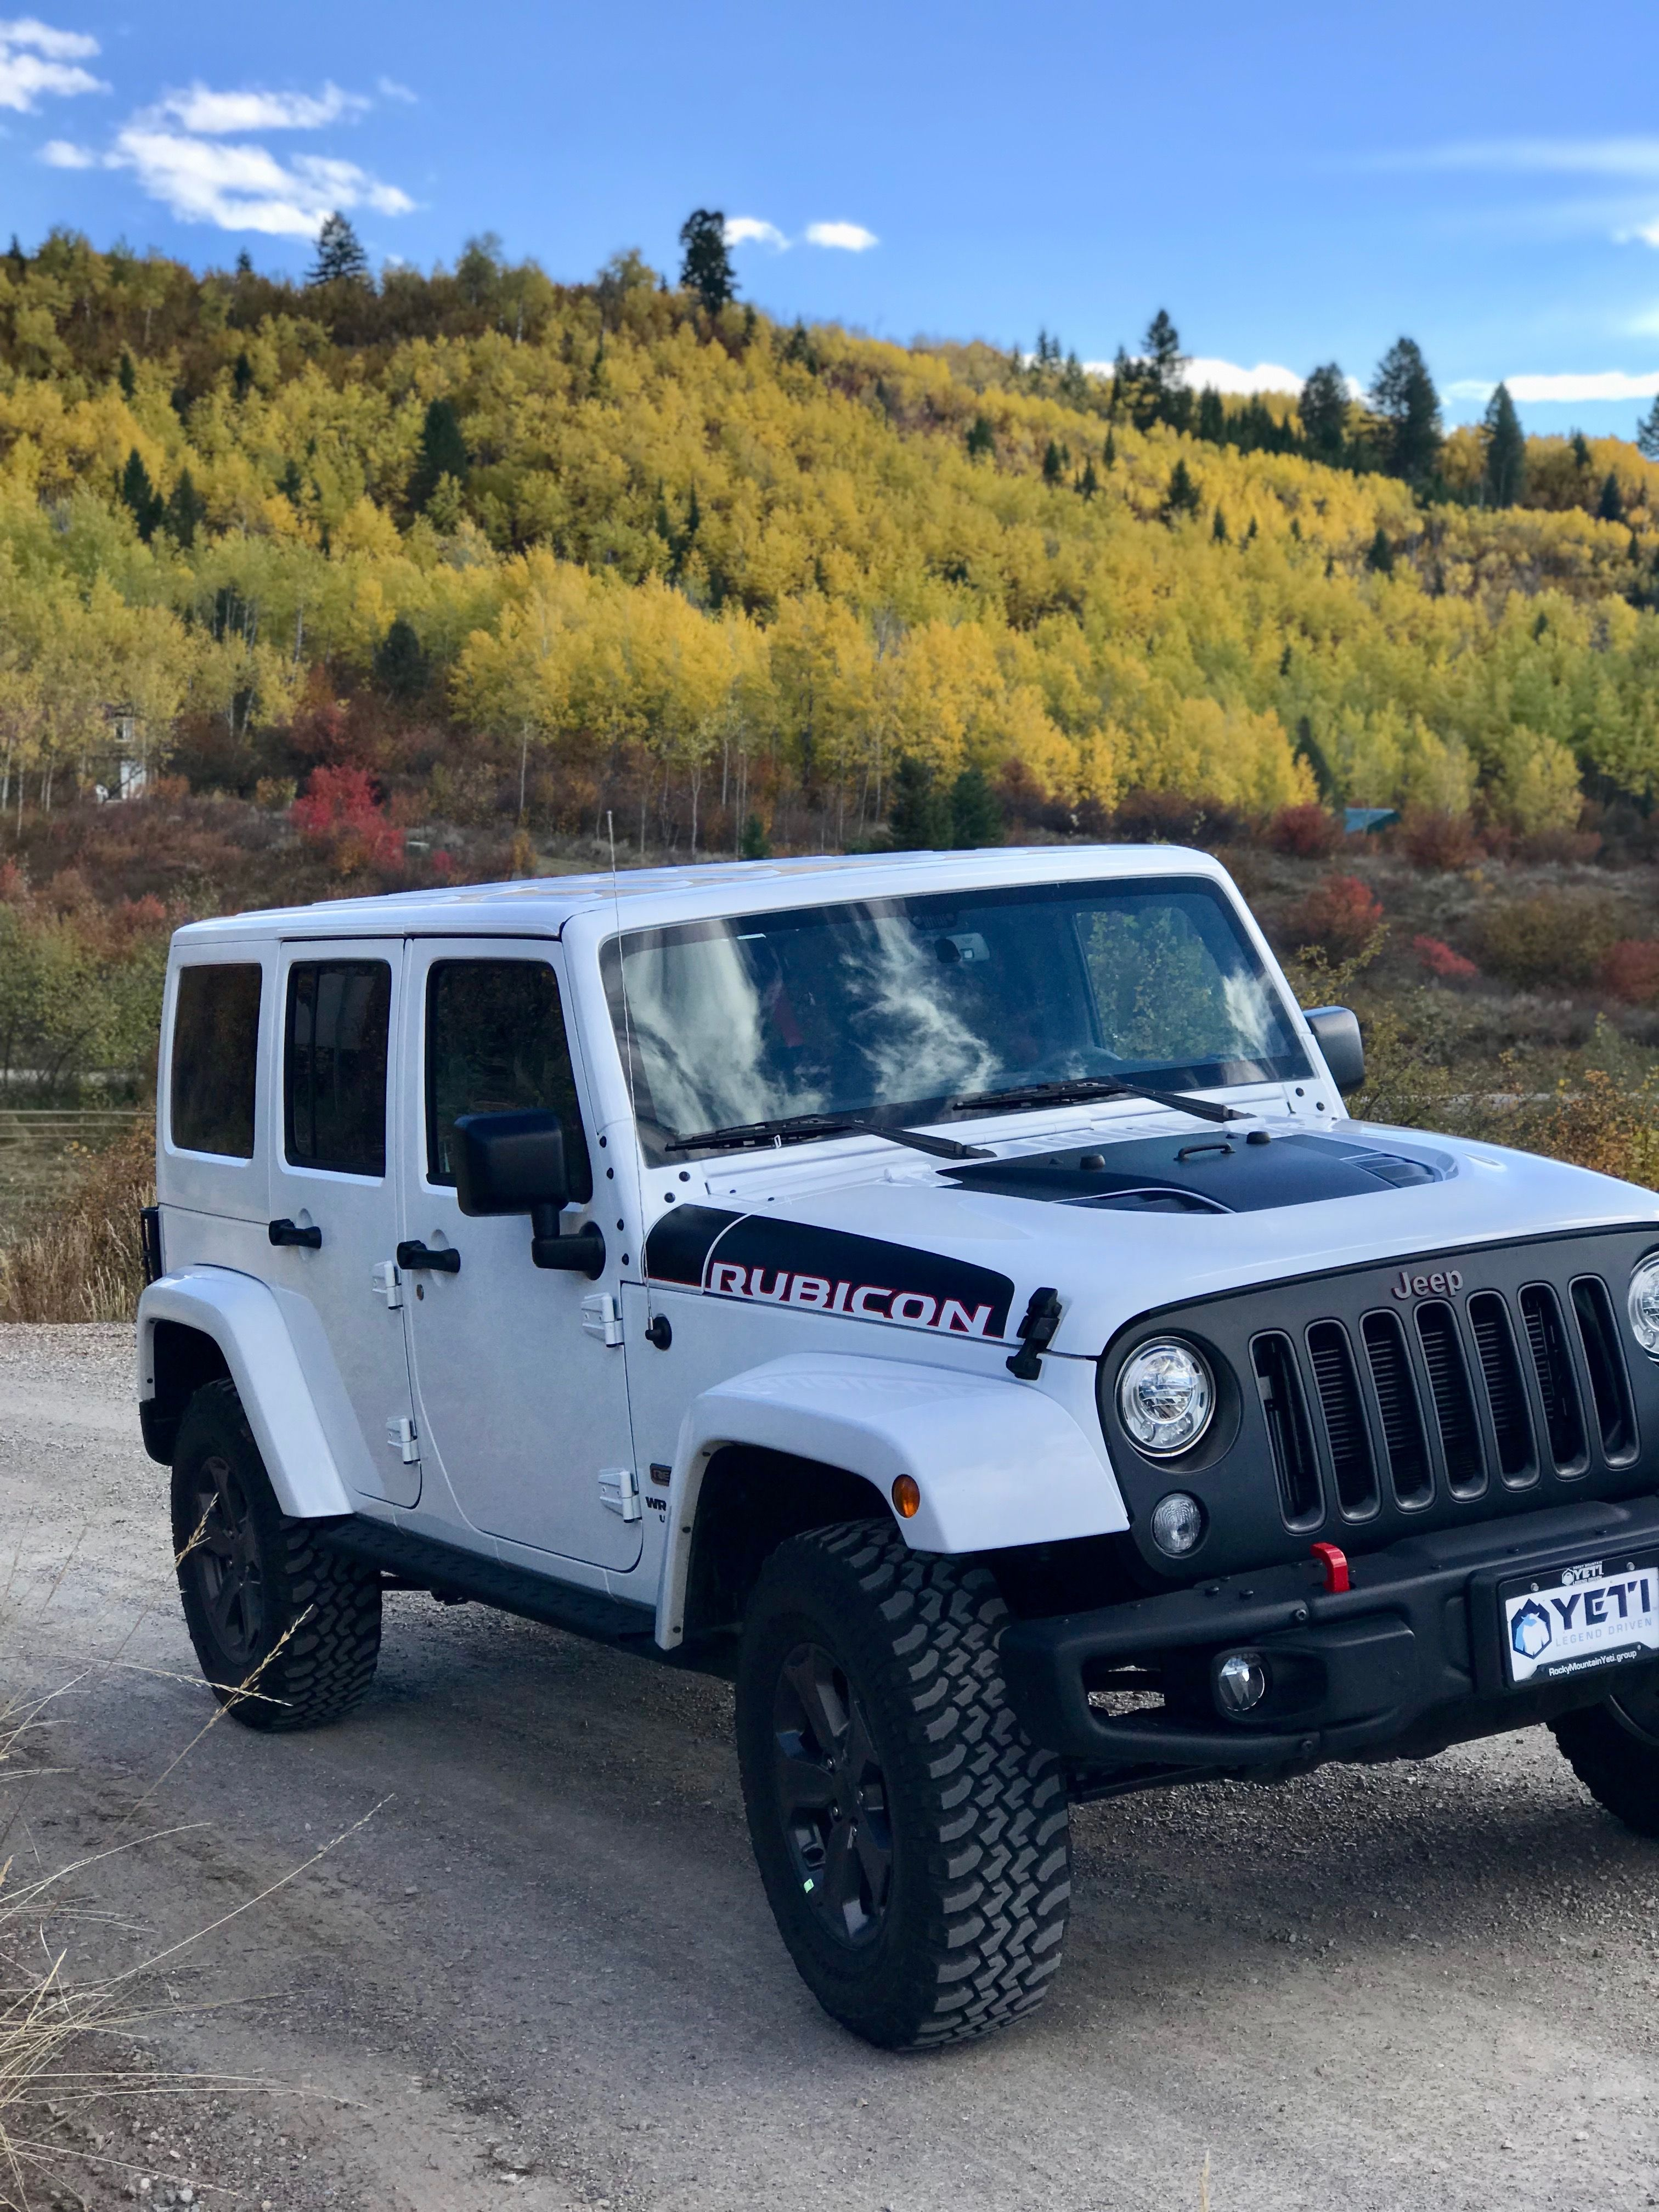 Pin By Tina S Health And Beauty Bar On Jeep Wrangler Rubicon Recon Jeep Wrangler Rubicon Wrangler Rubicon Jeep